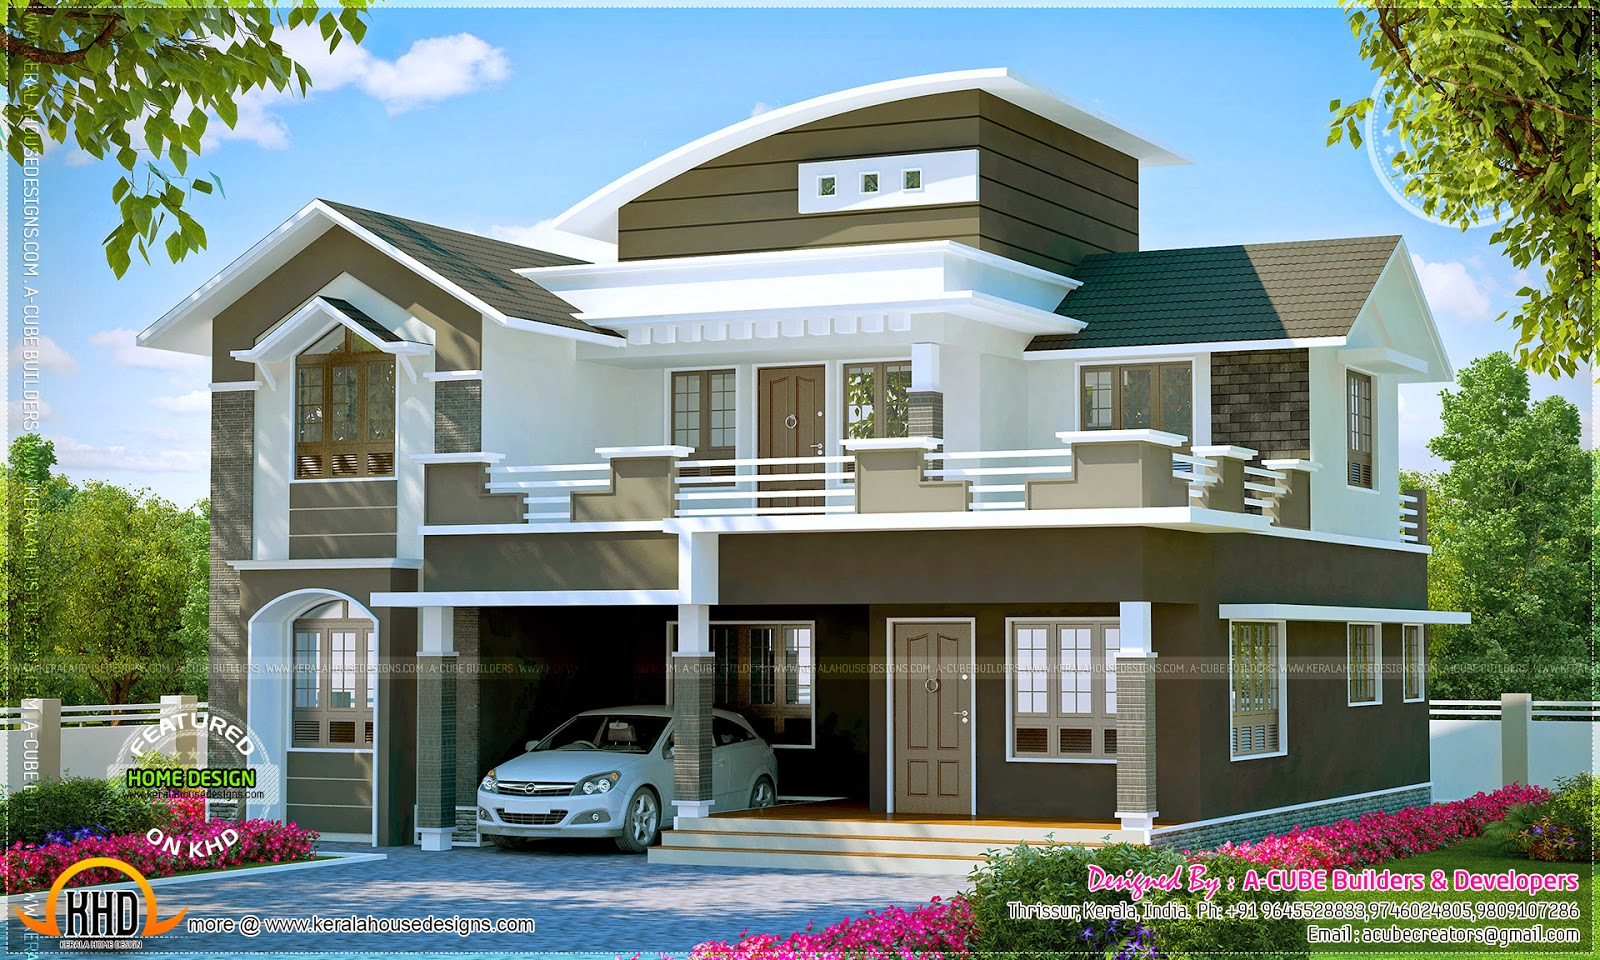 Well designed villa exteriors kerala home design and for Design this house